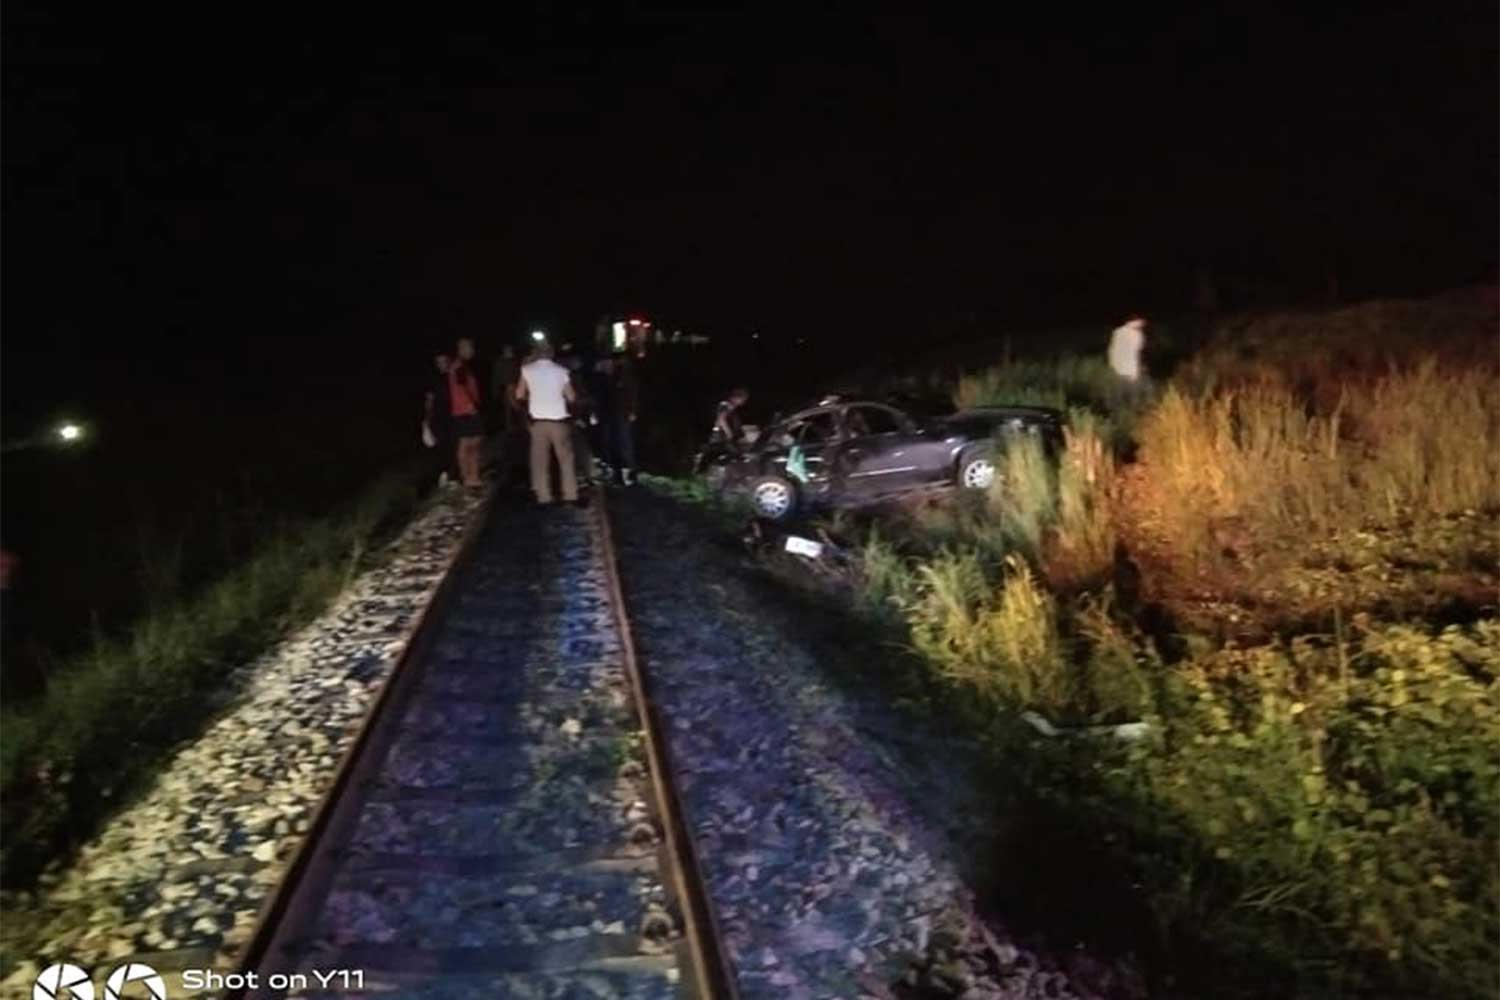 Police and rescue workers at  the crash scene - a railway crossing in tambon Takdaed of Muang district, Chumphon on Thursday night. (Photo: Chumphon Karnkusol-Saichon Banna rescue foundation Facebook page)